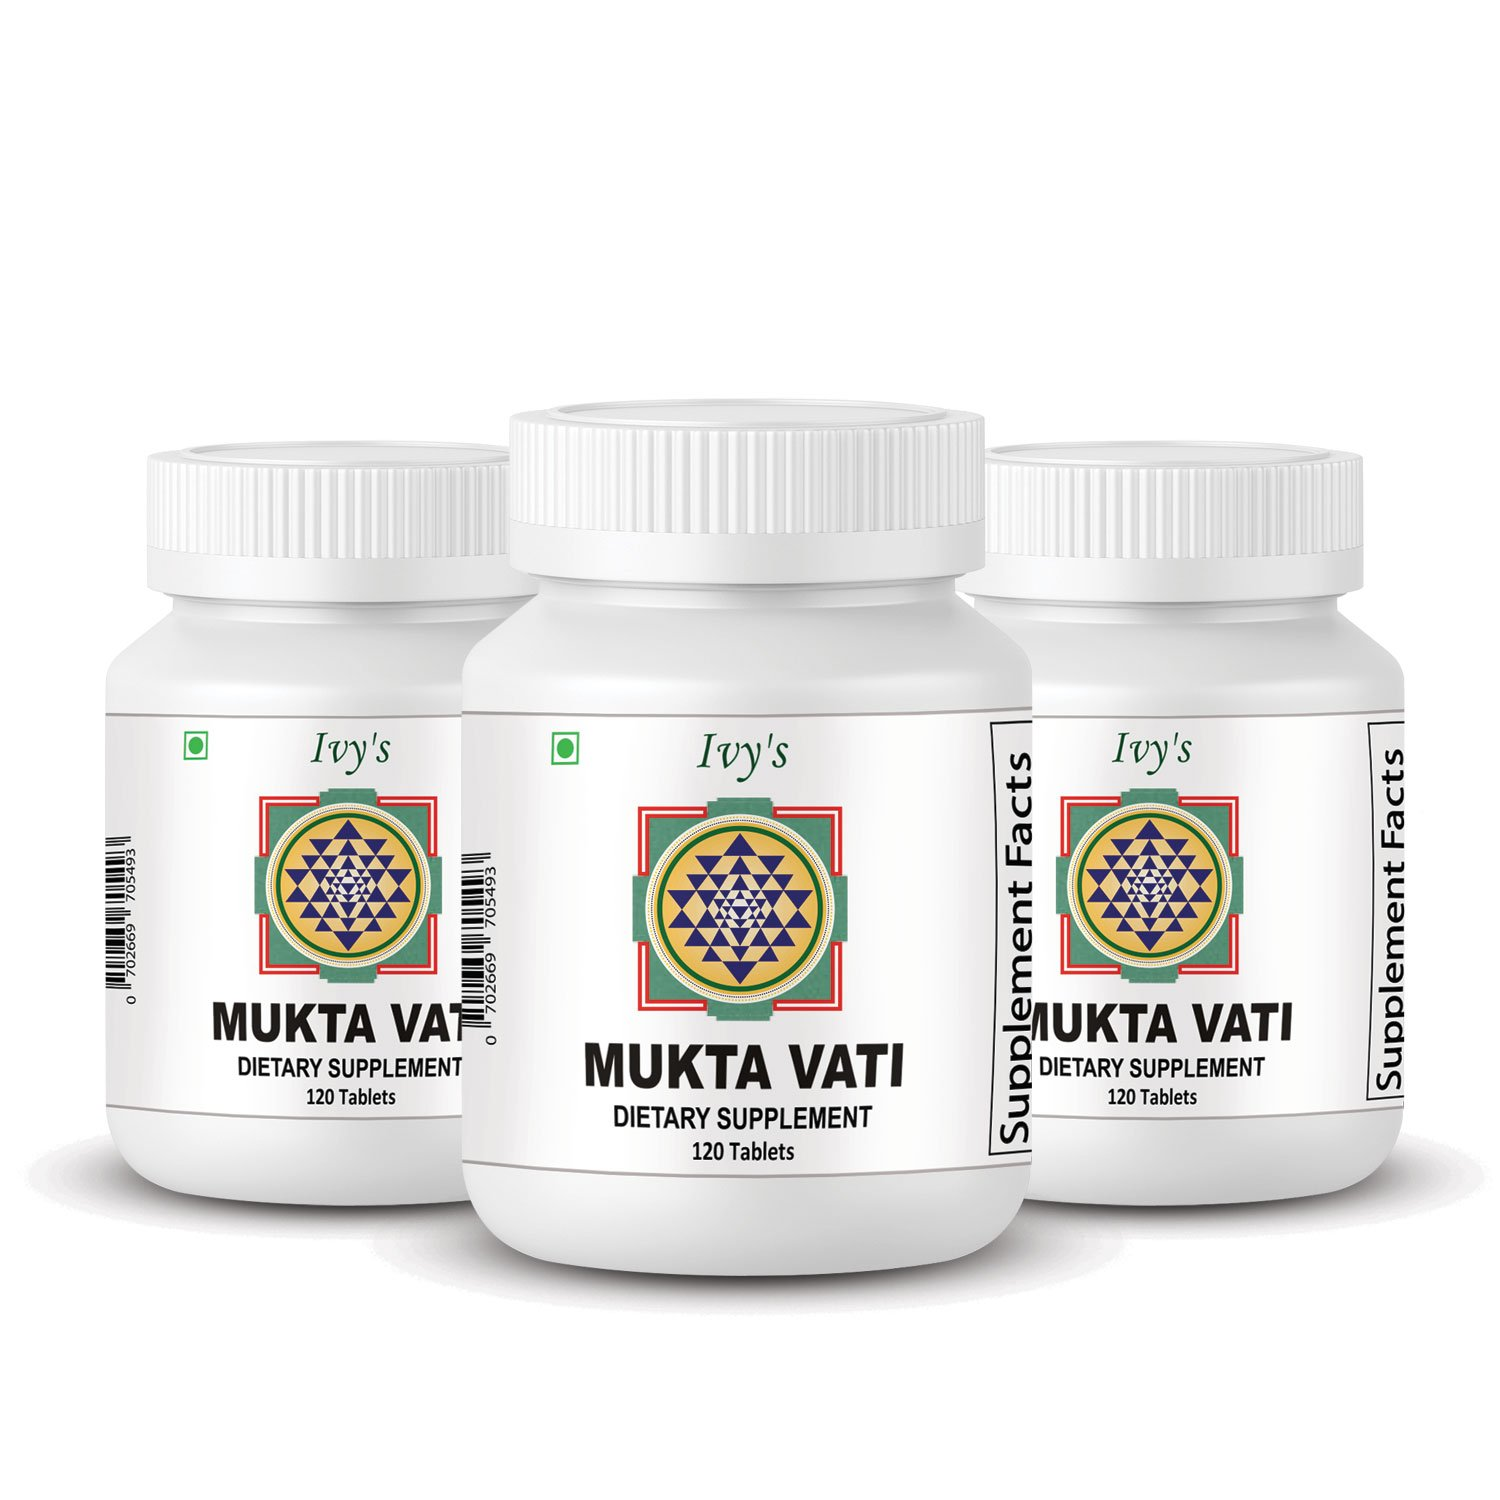 Mukta Vati 120 Herbal Tablet, 3 Packs of 120 Tab Each Ivy's Muktavati